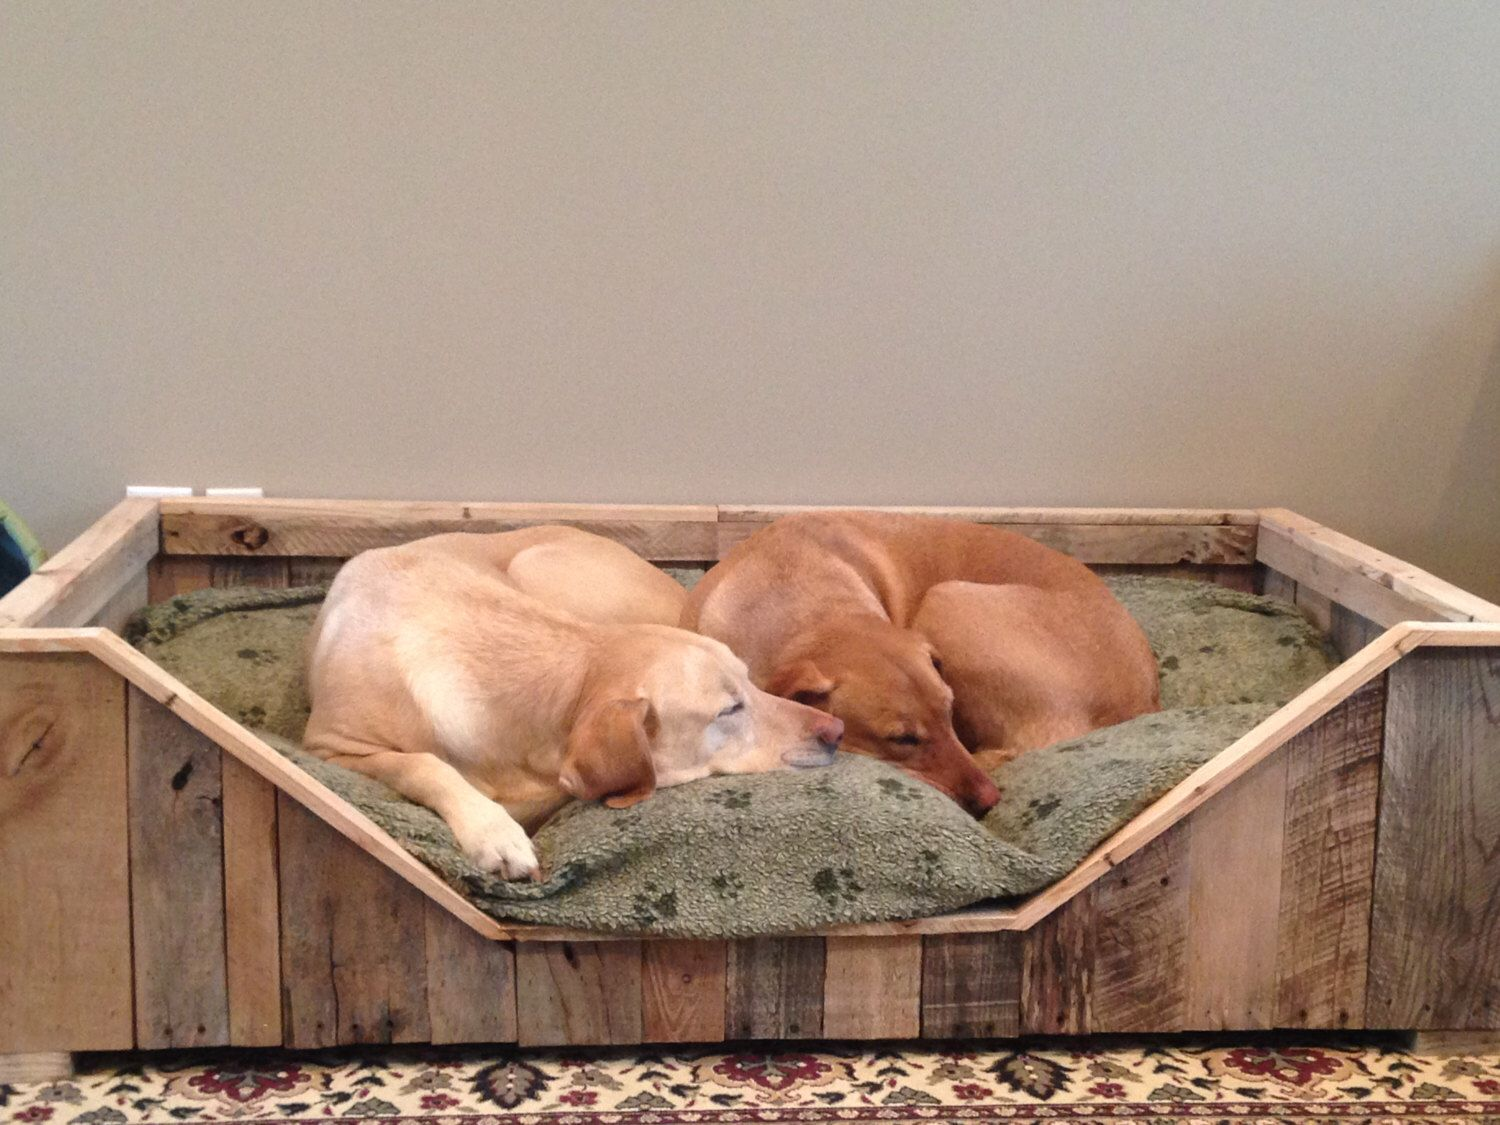 Dog Bed Rustic Wooden Pallet Country Looking Large Handmade By Russbuilders On Etsy Https